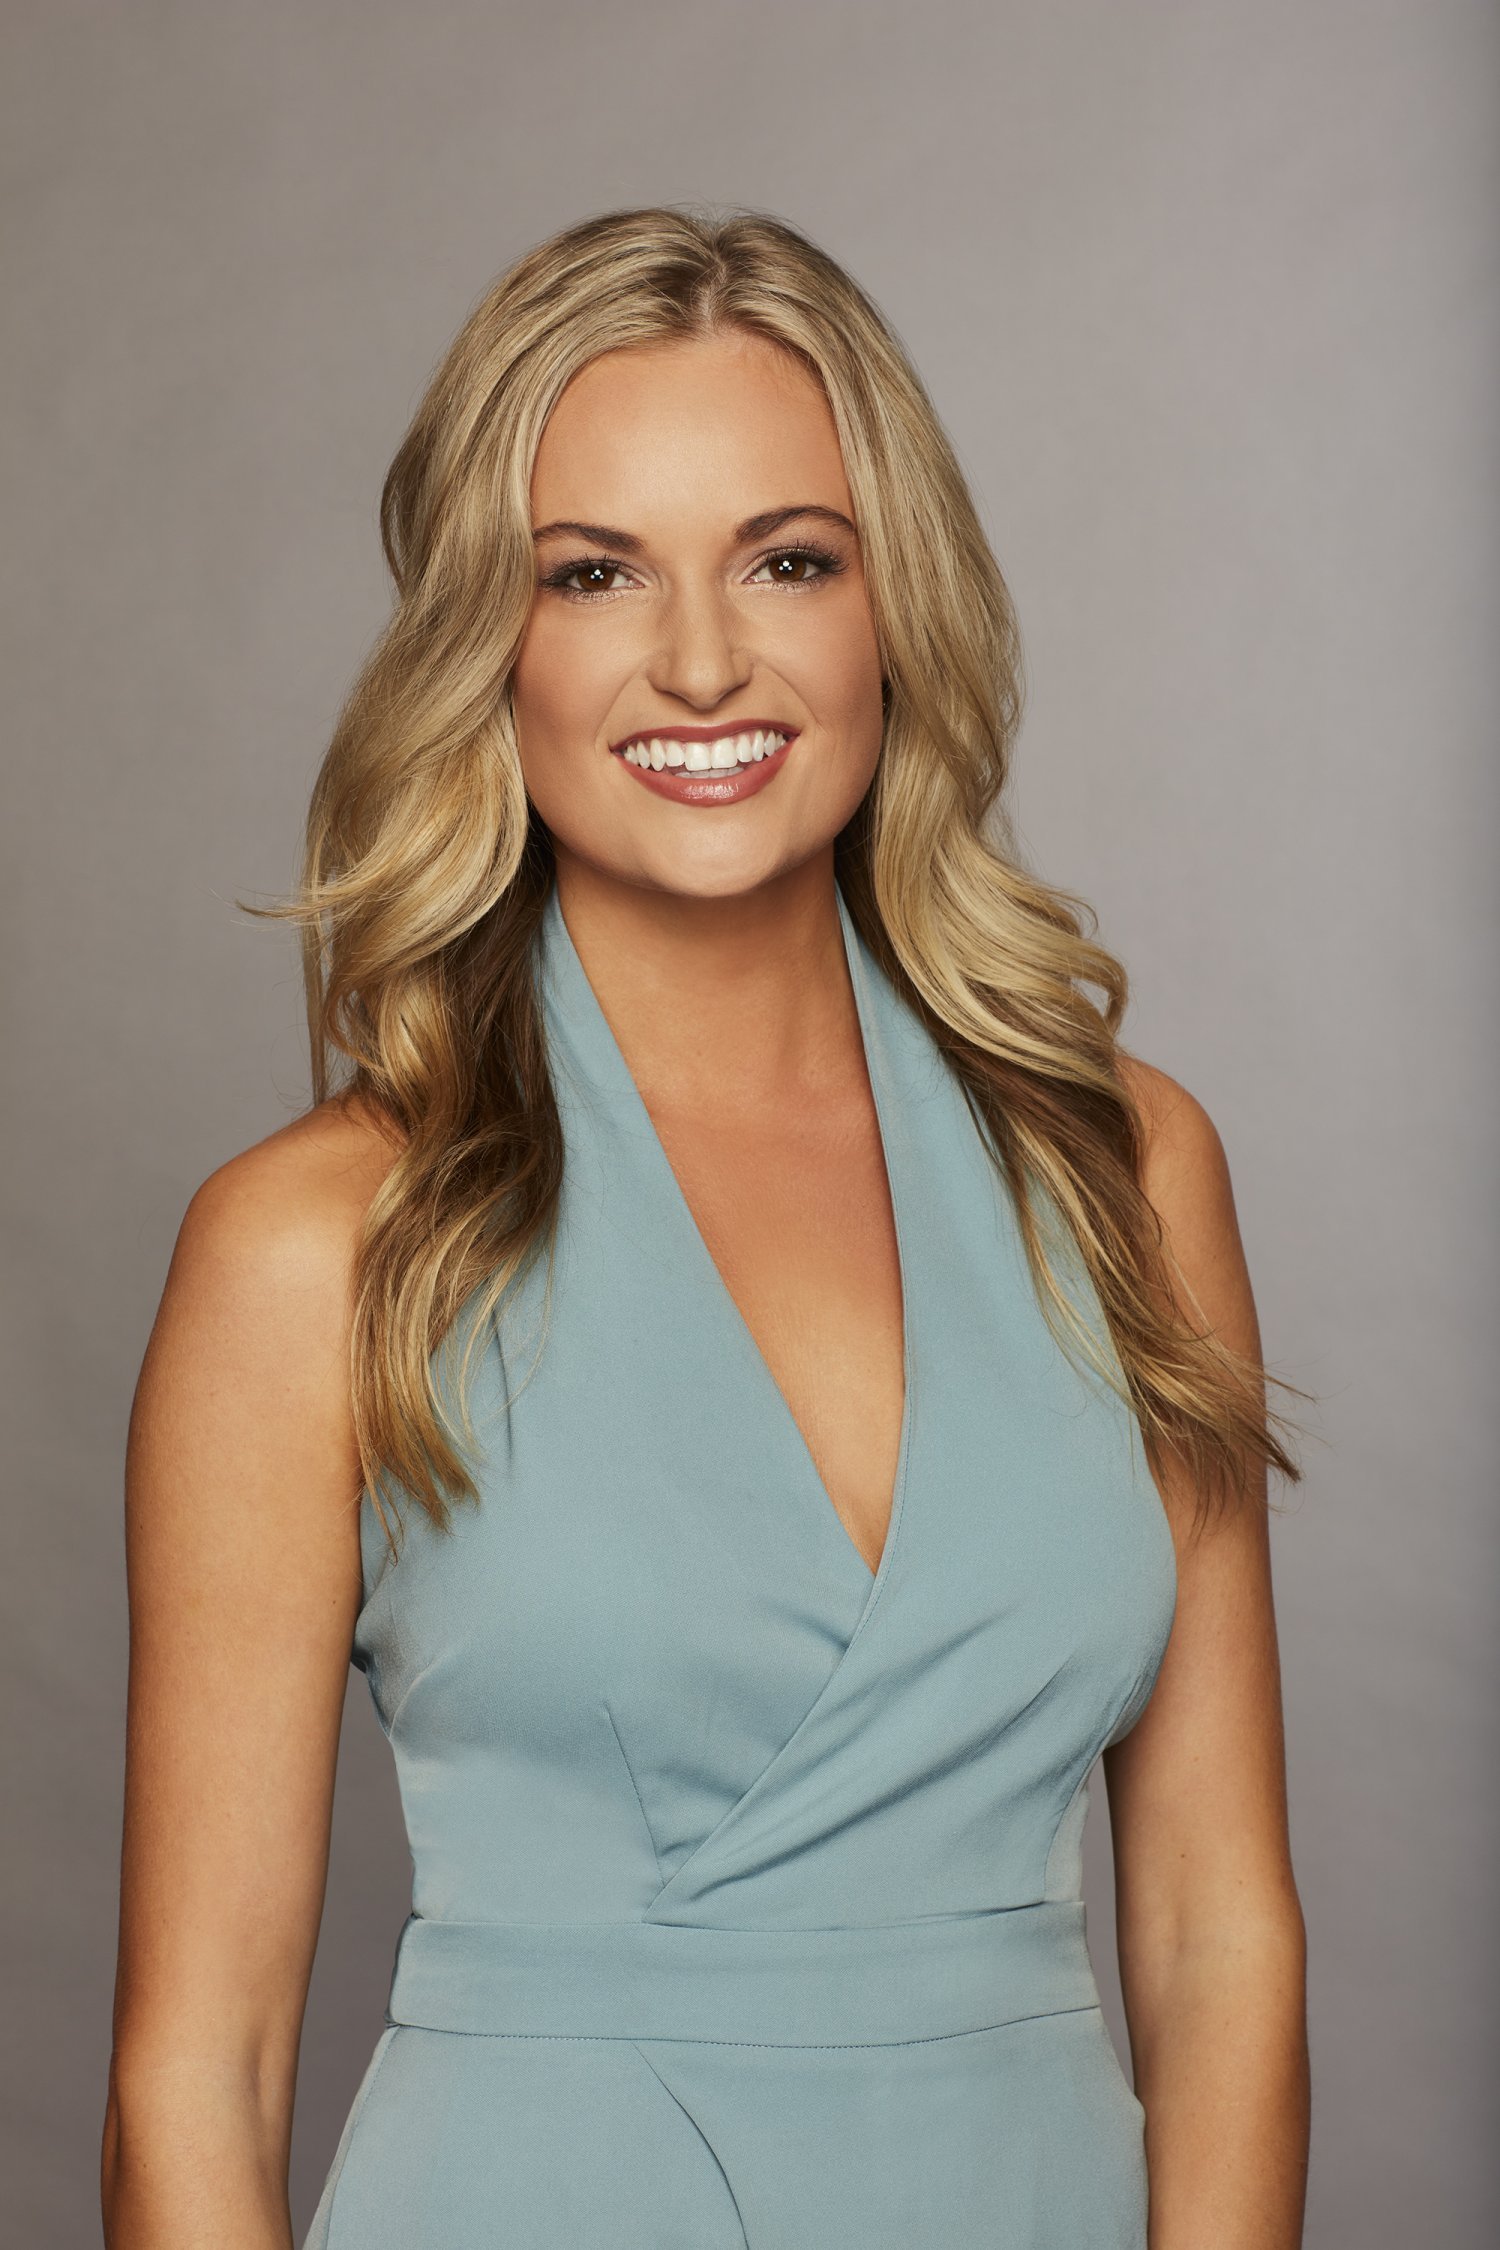 Bachelor 23 - Annie Reardon - Discussion - *Sleuthing Spoilers*  - Page 3 4855-o